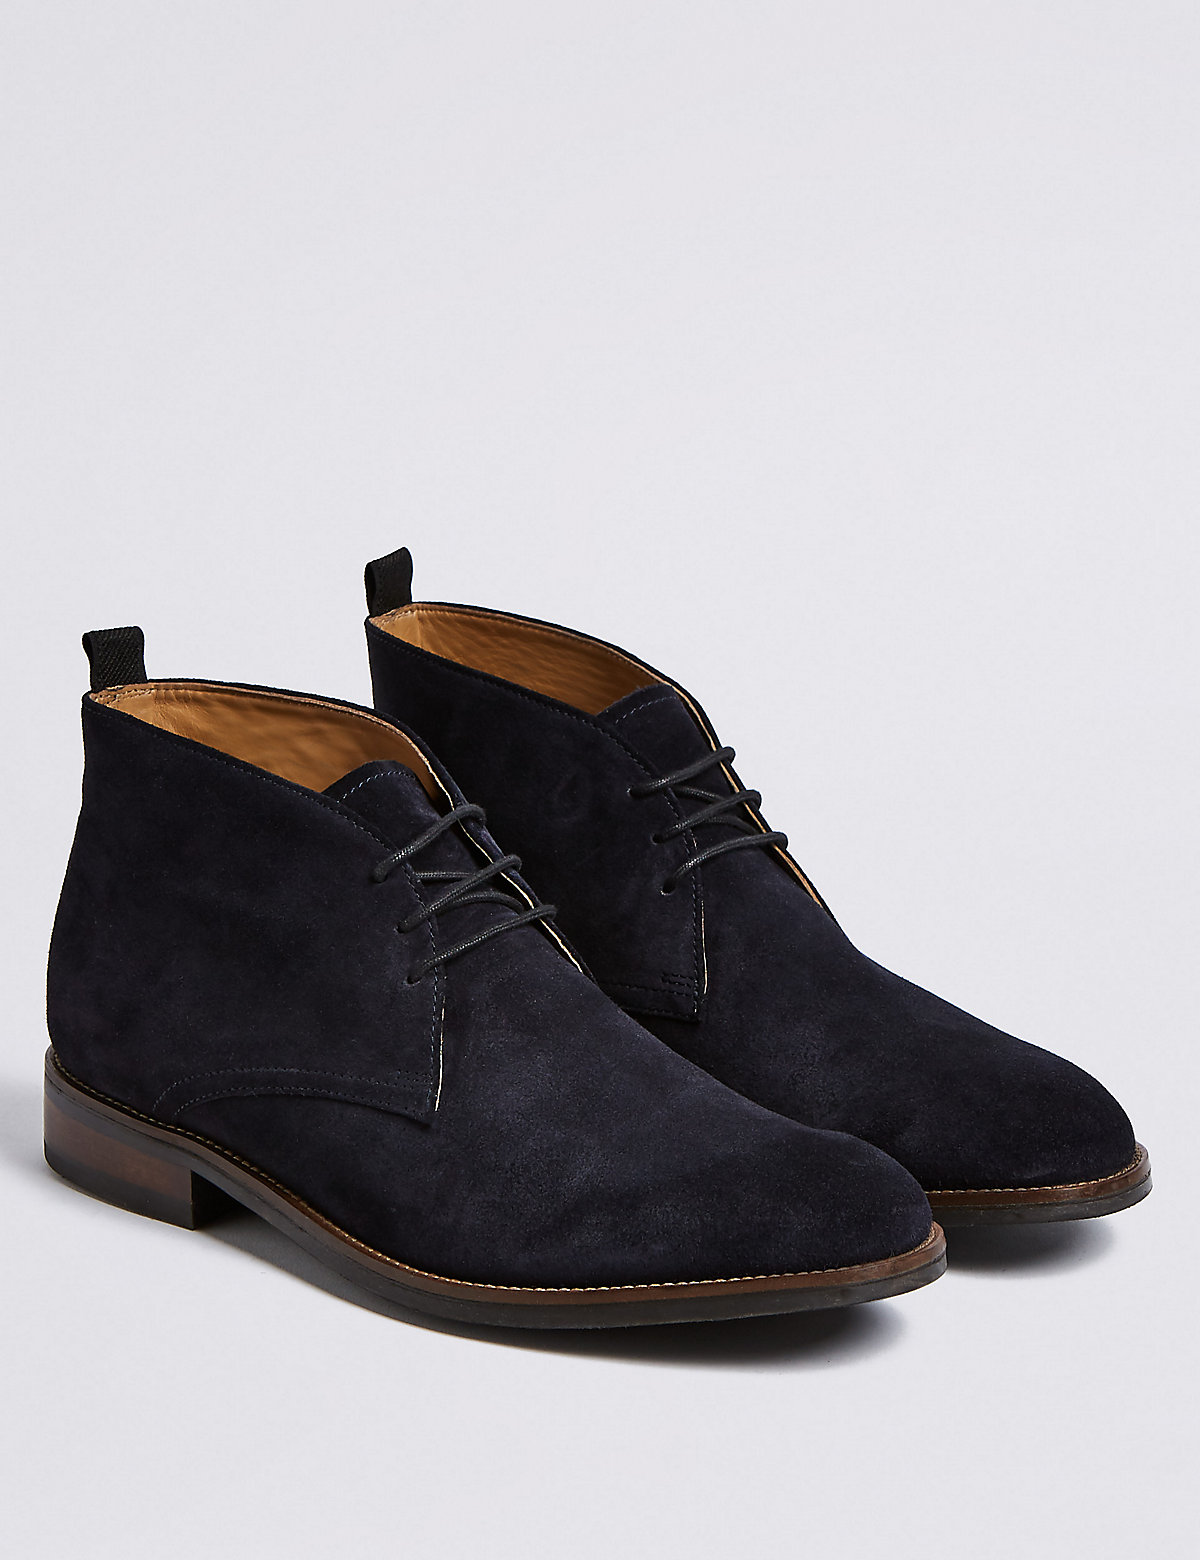 Marks & Spencer Navy Suede Lace-up Chukka Boots